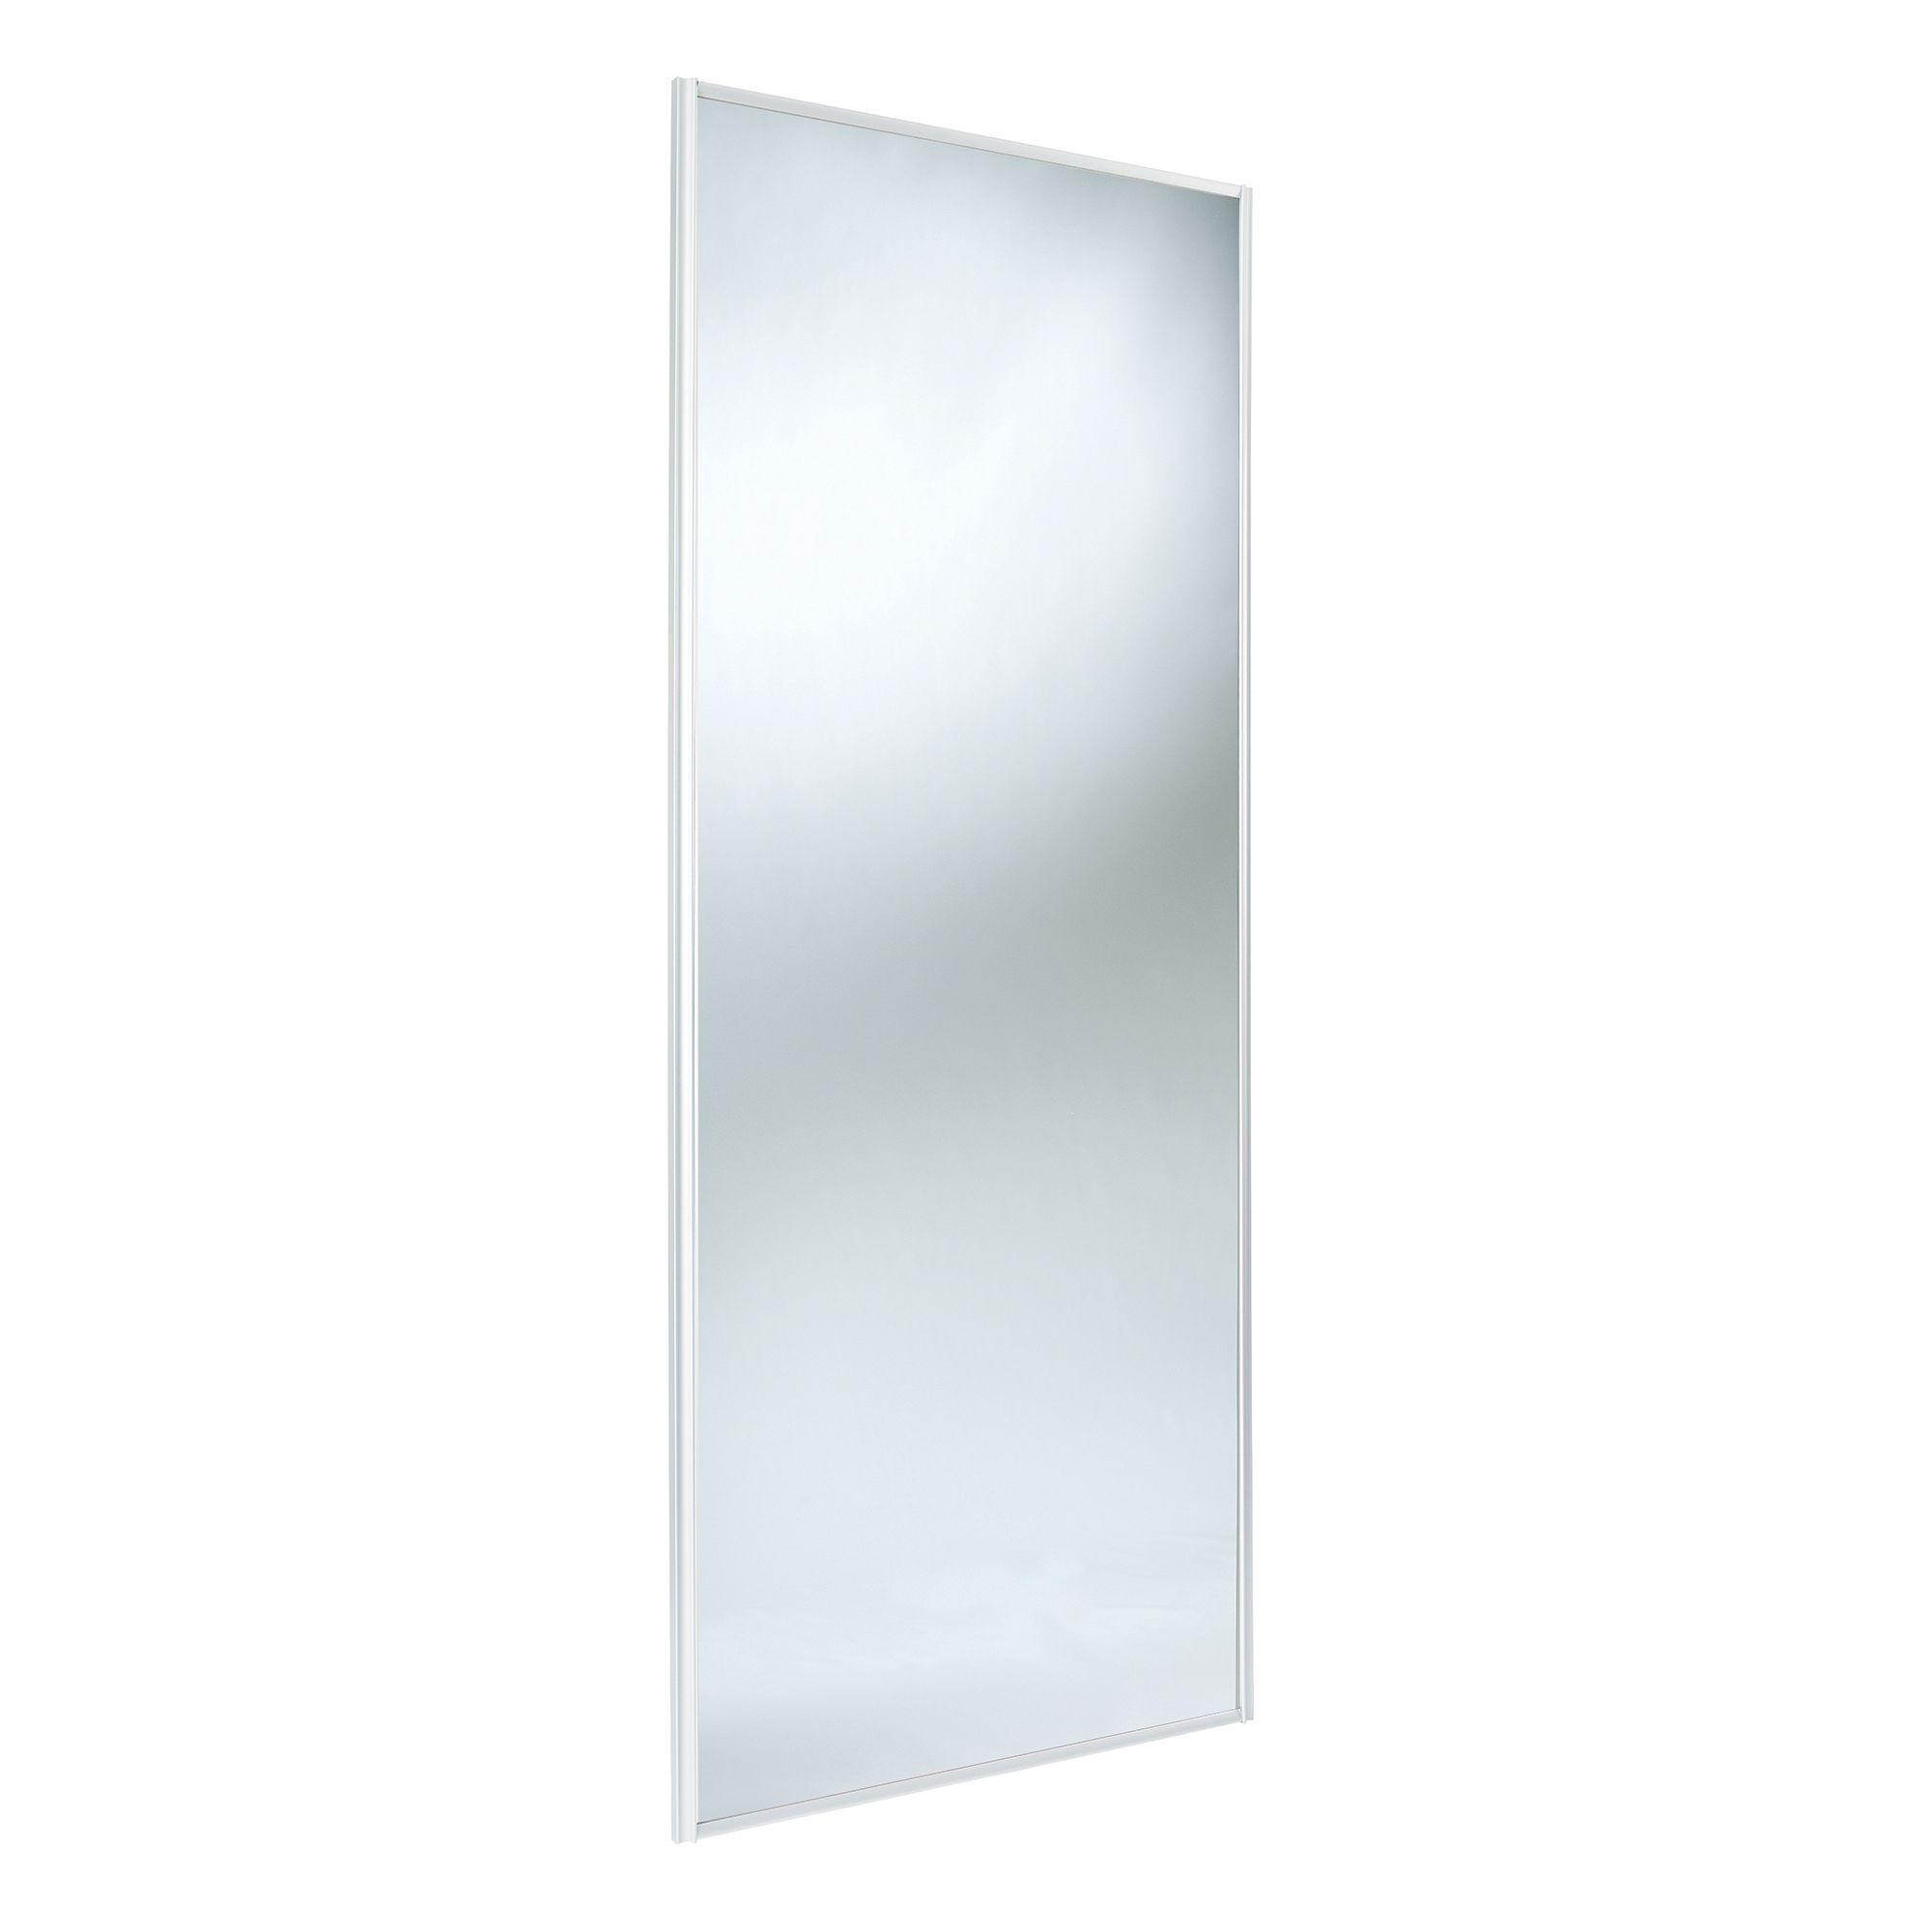 white shaker mirror door  sc 1 st  Pidgeon English & 100 External Glass Sliding Doors Doors Frame U0026 Sliding ...